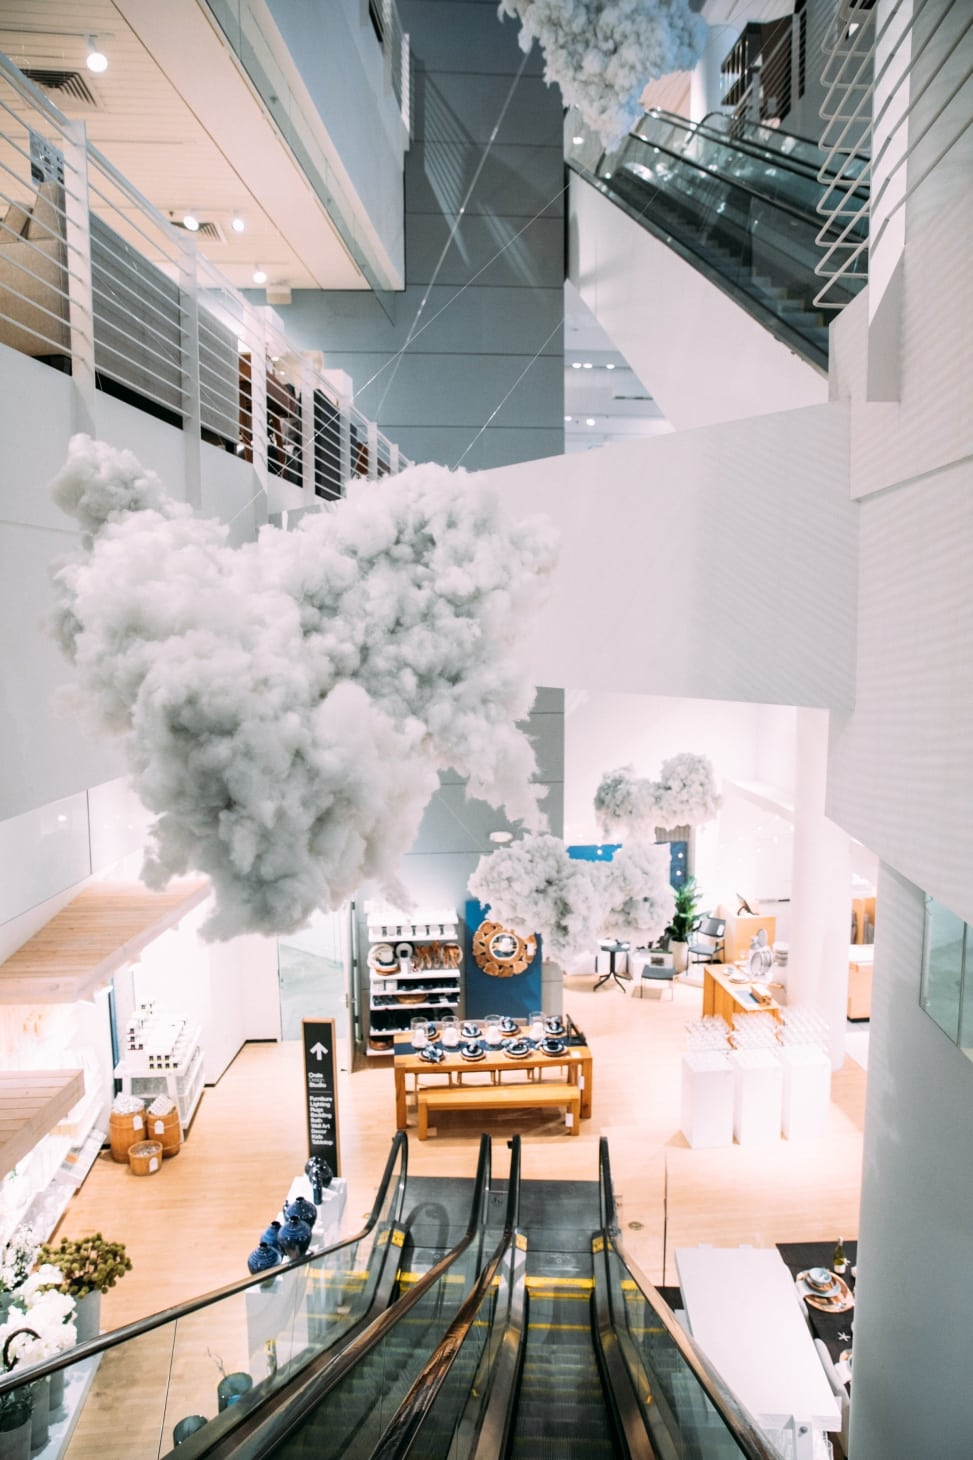 The inside of a Crate and Barrel store with a giant cloud installation over the escalator for crate and barrel san francisco private registry event with a practical wedding